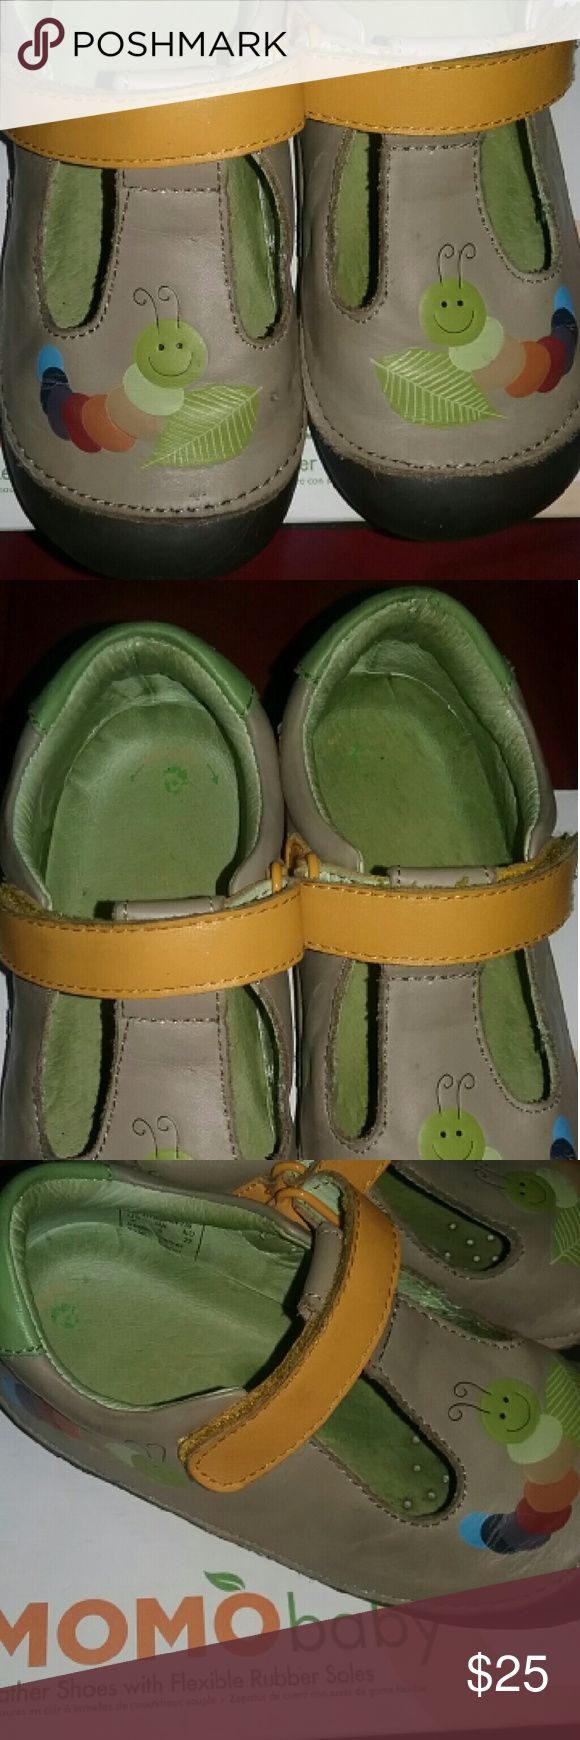 MomoBaby First Walker/Toddler Rainbow Caterpillar Leather shoes with Flexible Rubber Soles and velcro closure. SIZE 9 BOYS T STRAP IN THE COLOR TAN. Worn a handful of times last summer and in very good condition! Great for little ones who need wide width shoes as so does mine and these were not a problem. MOMObaby  Shoes Baby & Walker